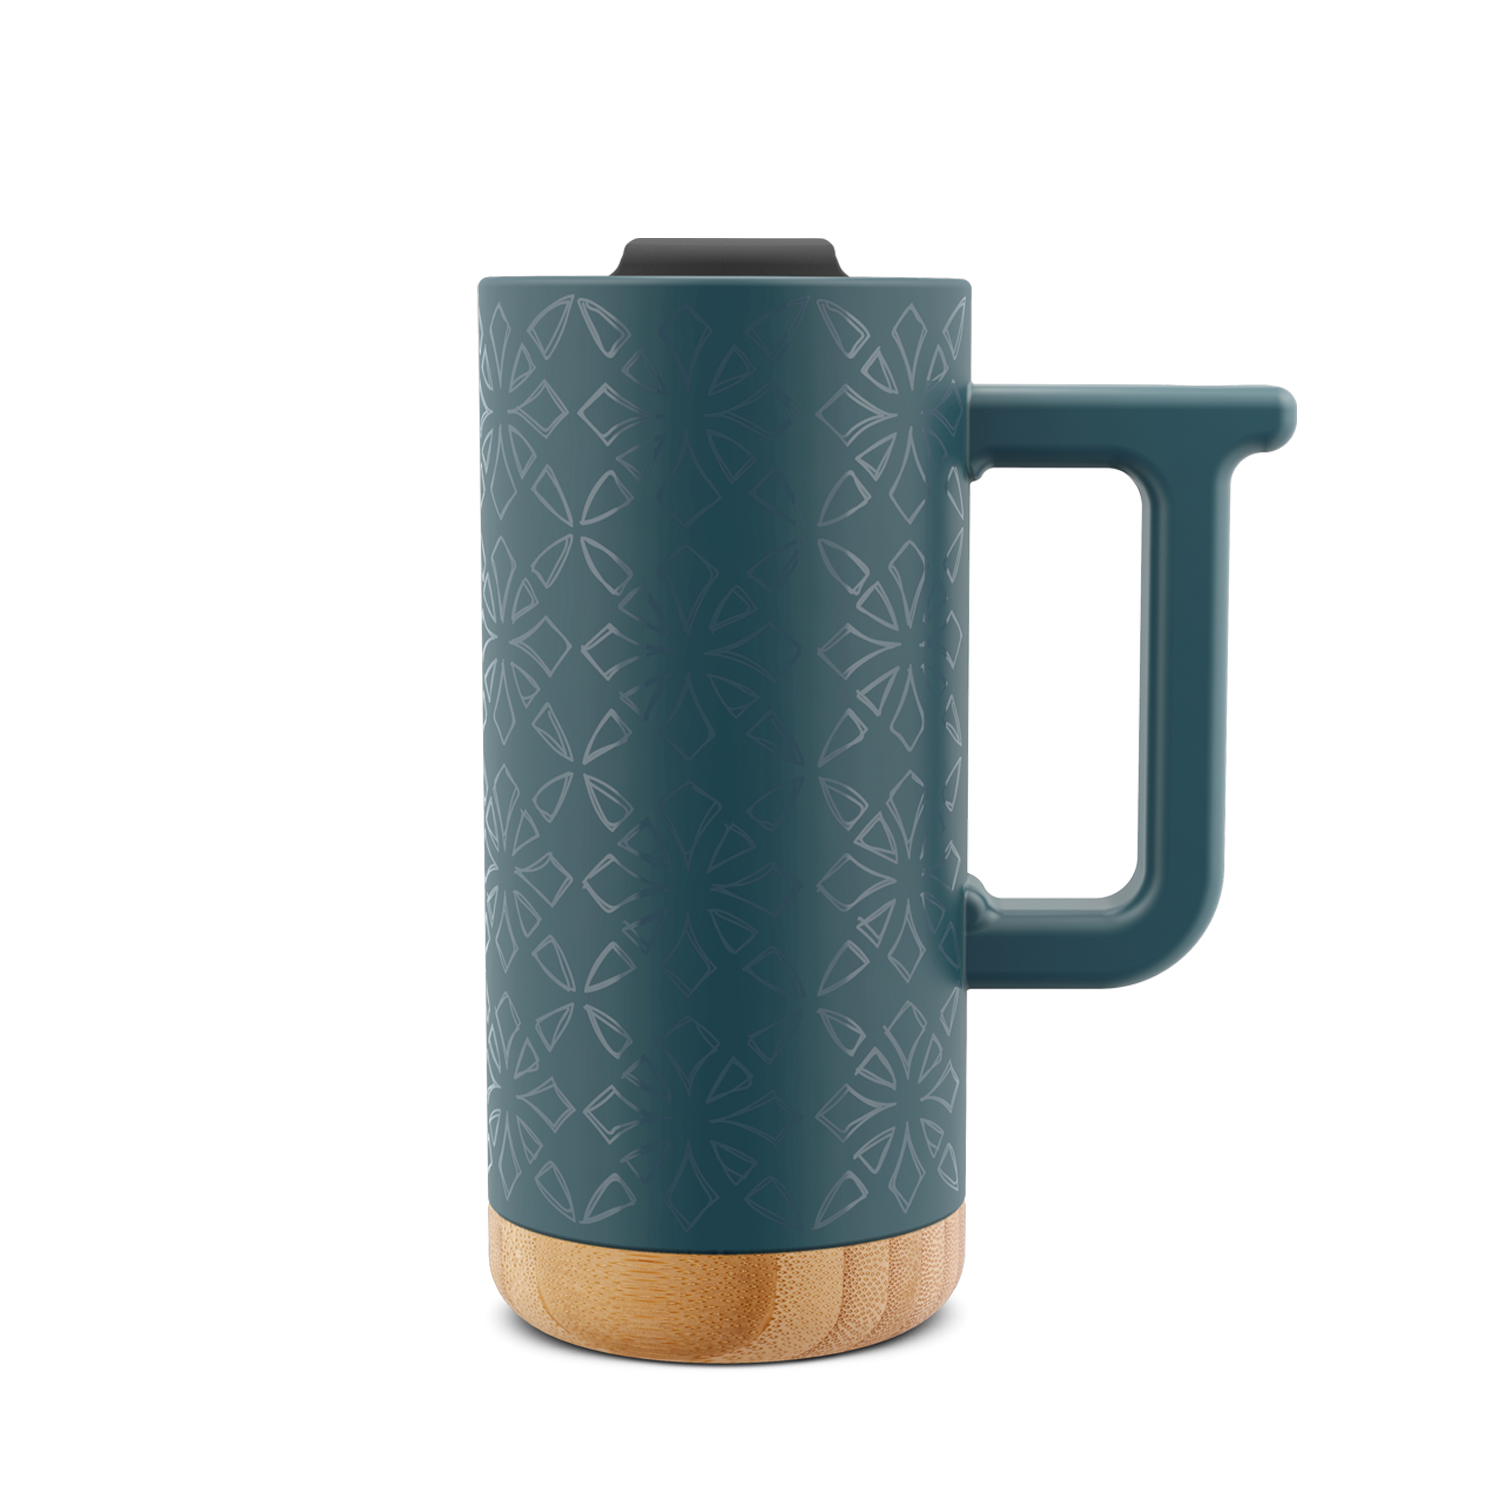 Aspen 16oz Ceramic Travel Mug - $17.99